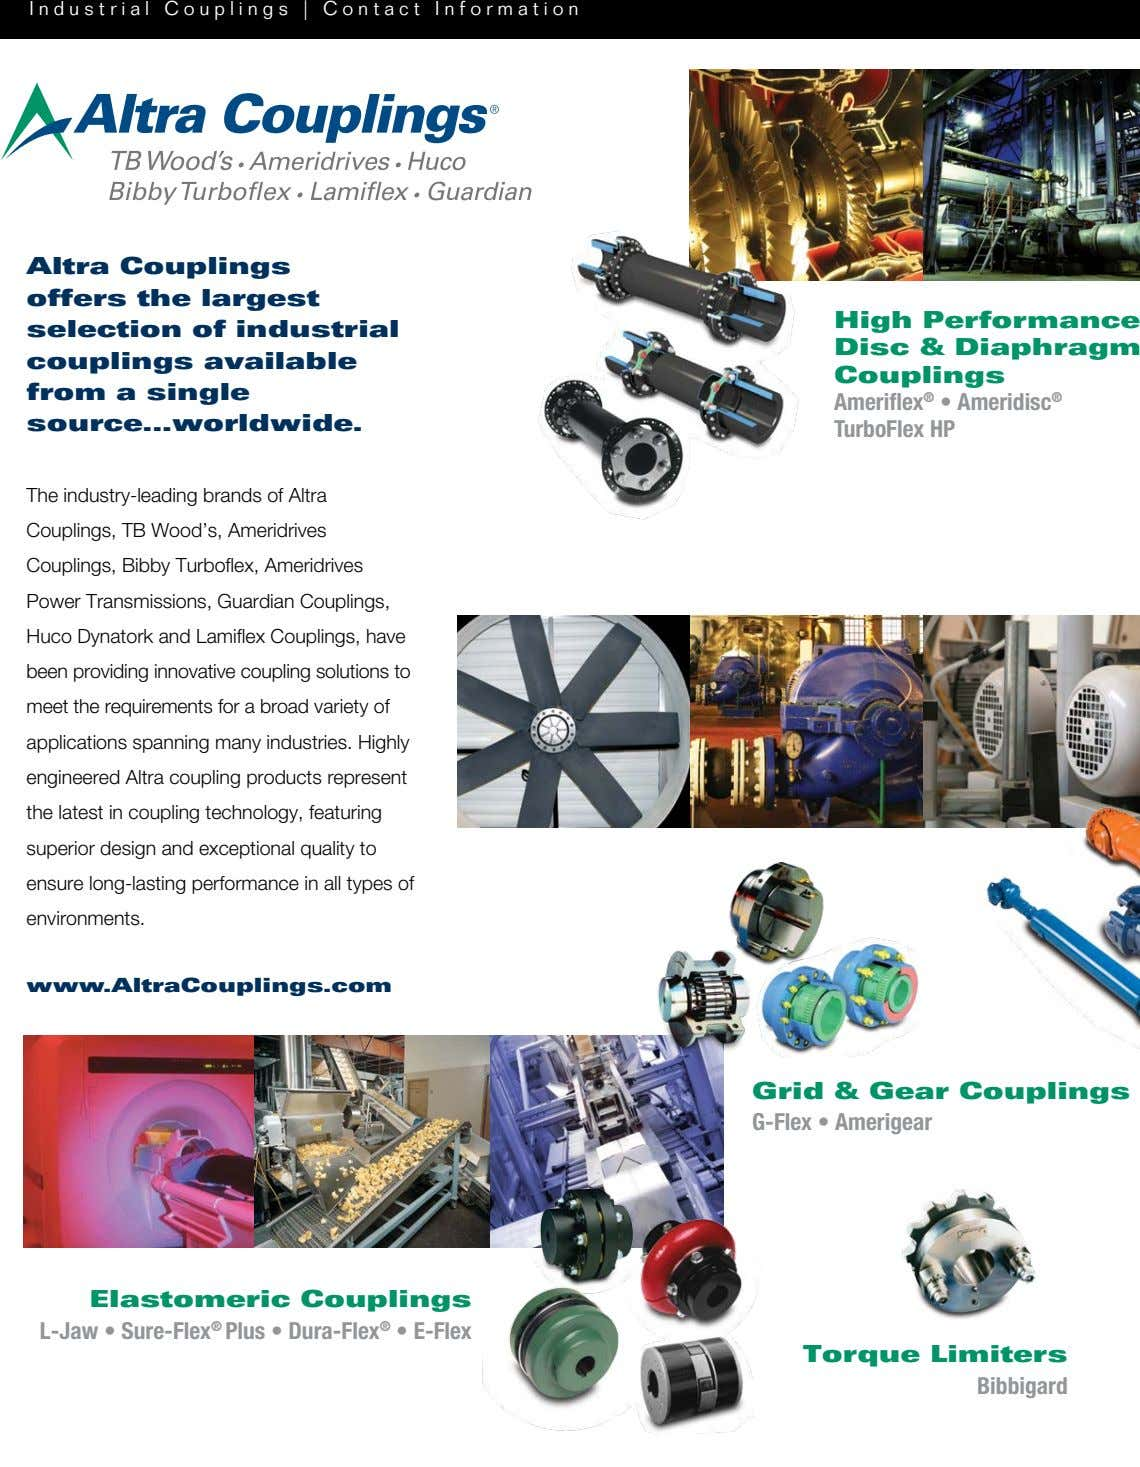 Industrial Couplings | Contact Information Altra Couplings offers the largest selection of industrial couplings